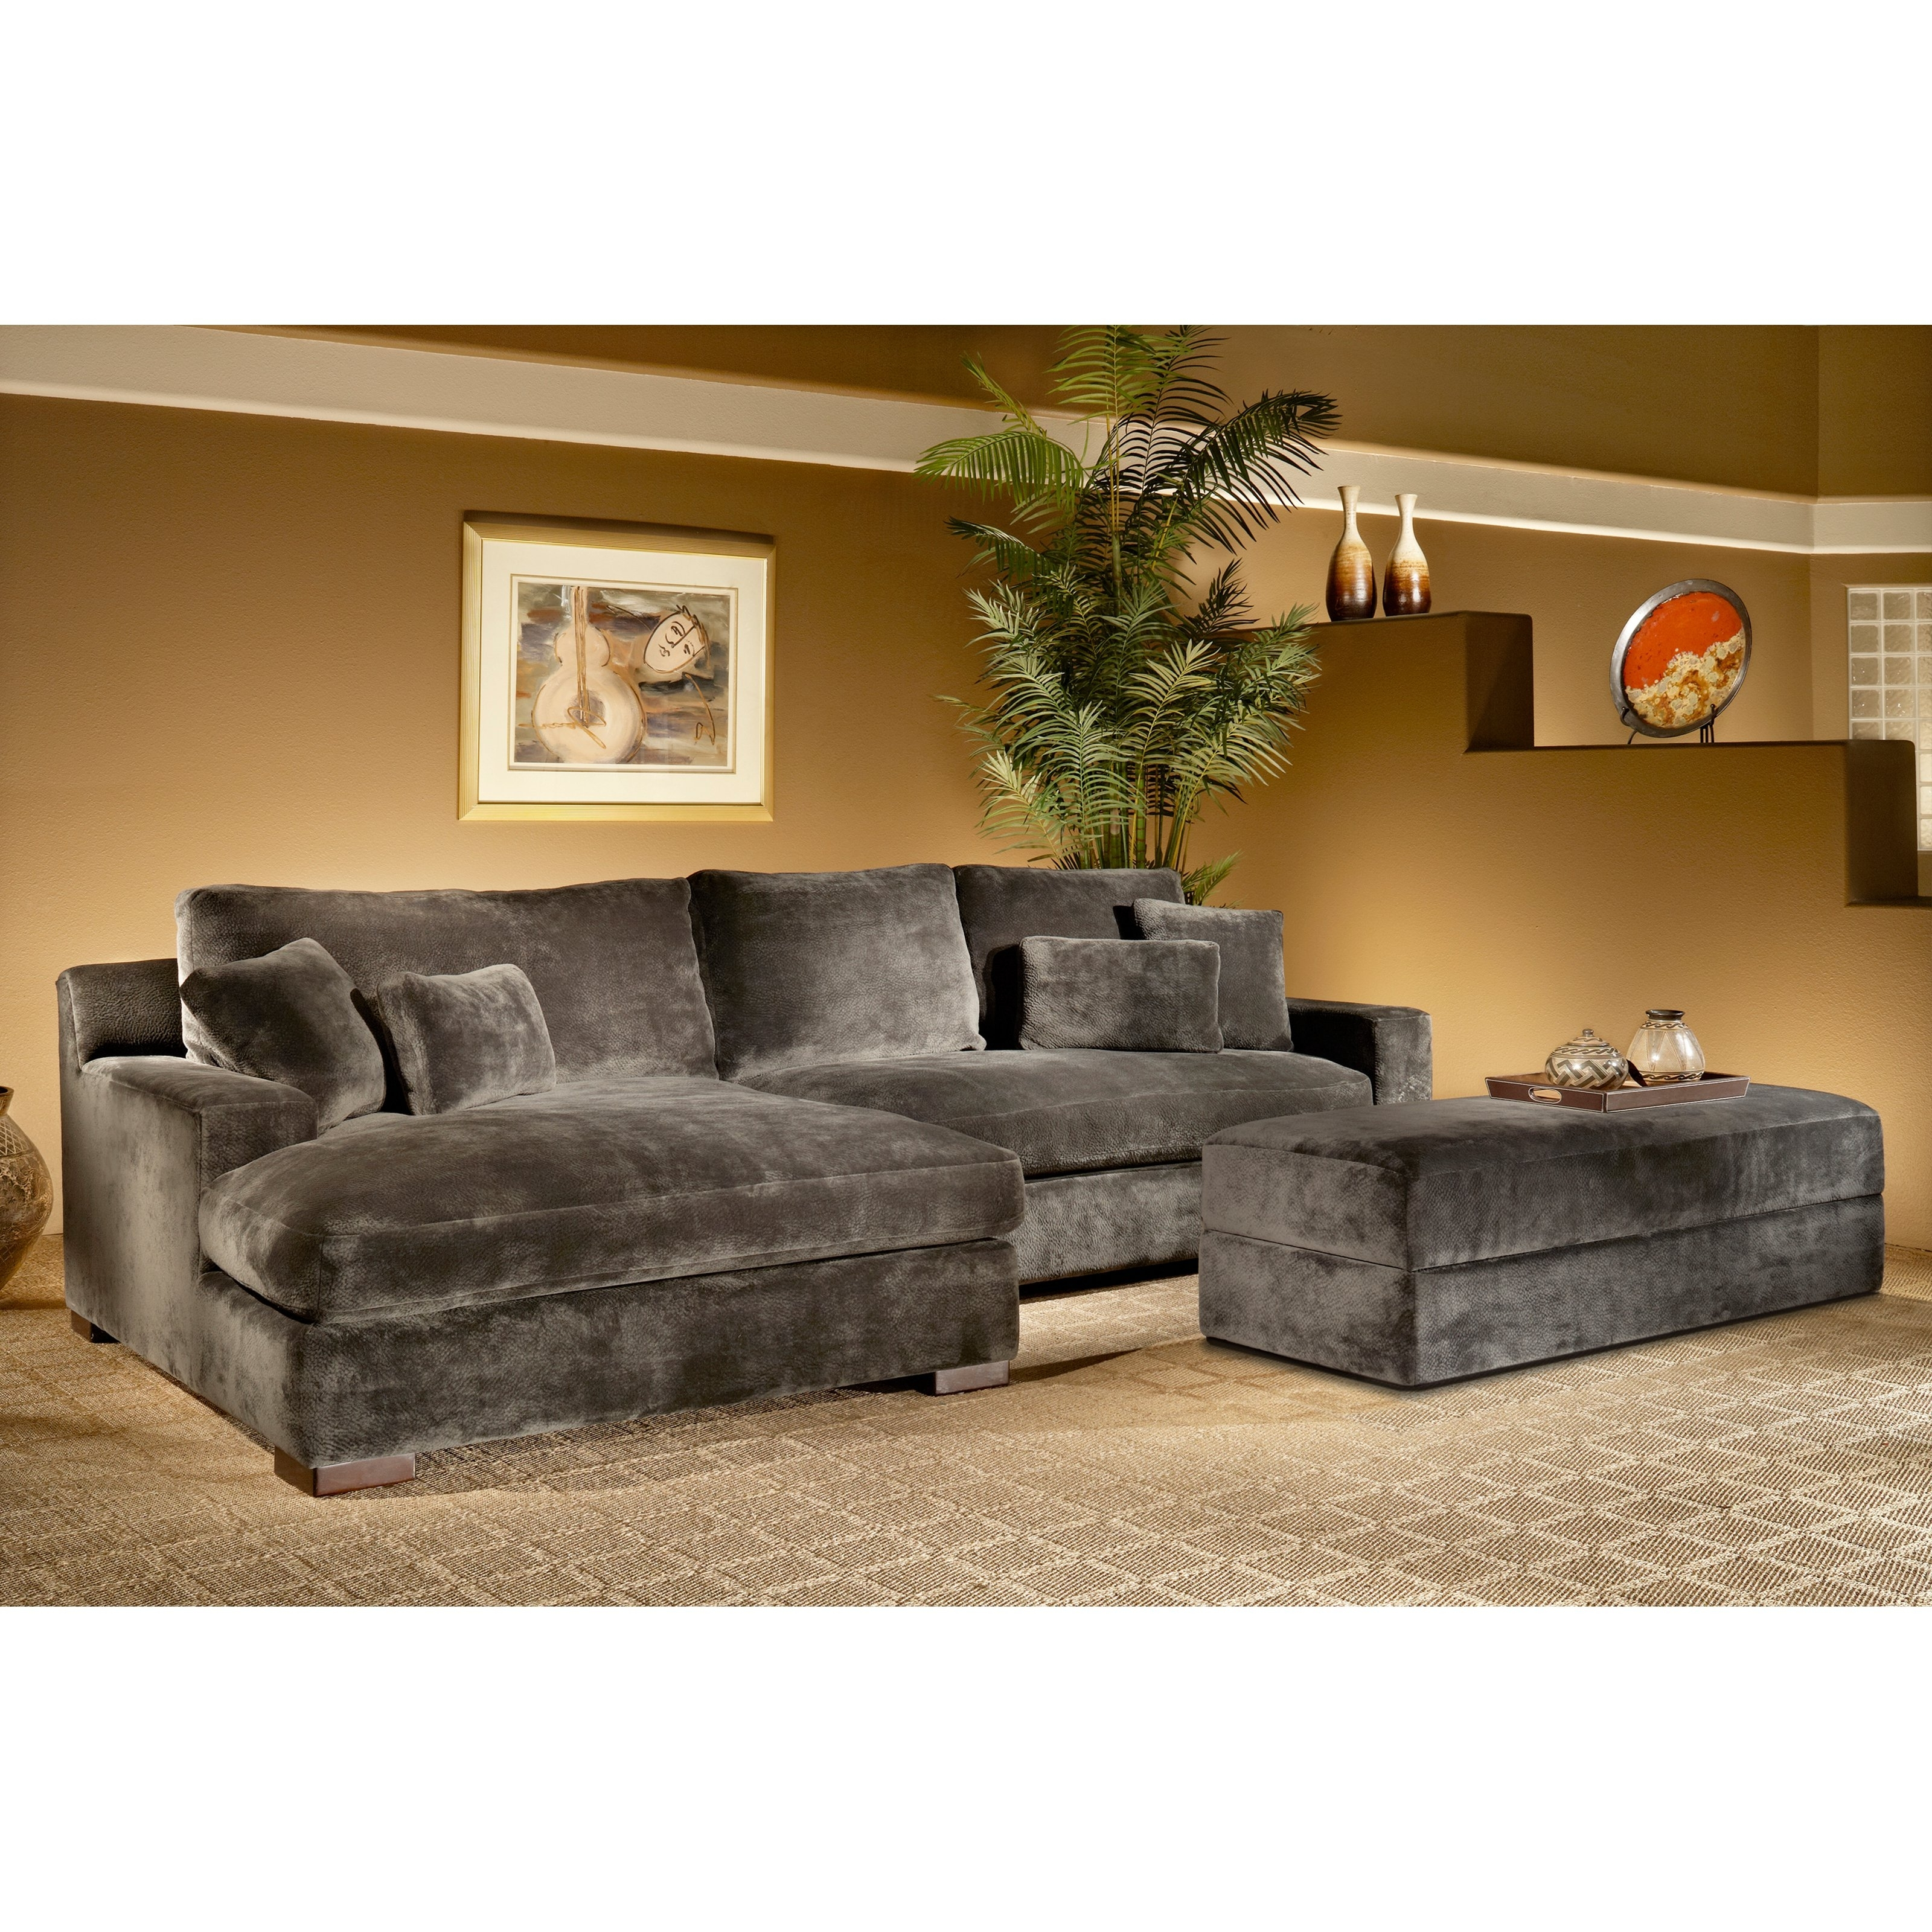 2 Piece Sectional Sofa | 2 Piece Sectional Sofa Canada | 2 Piece Throughout Elm Grande Ii 2 Piece Sectionals (Image 10 of 25)